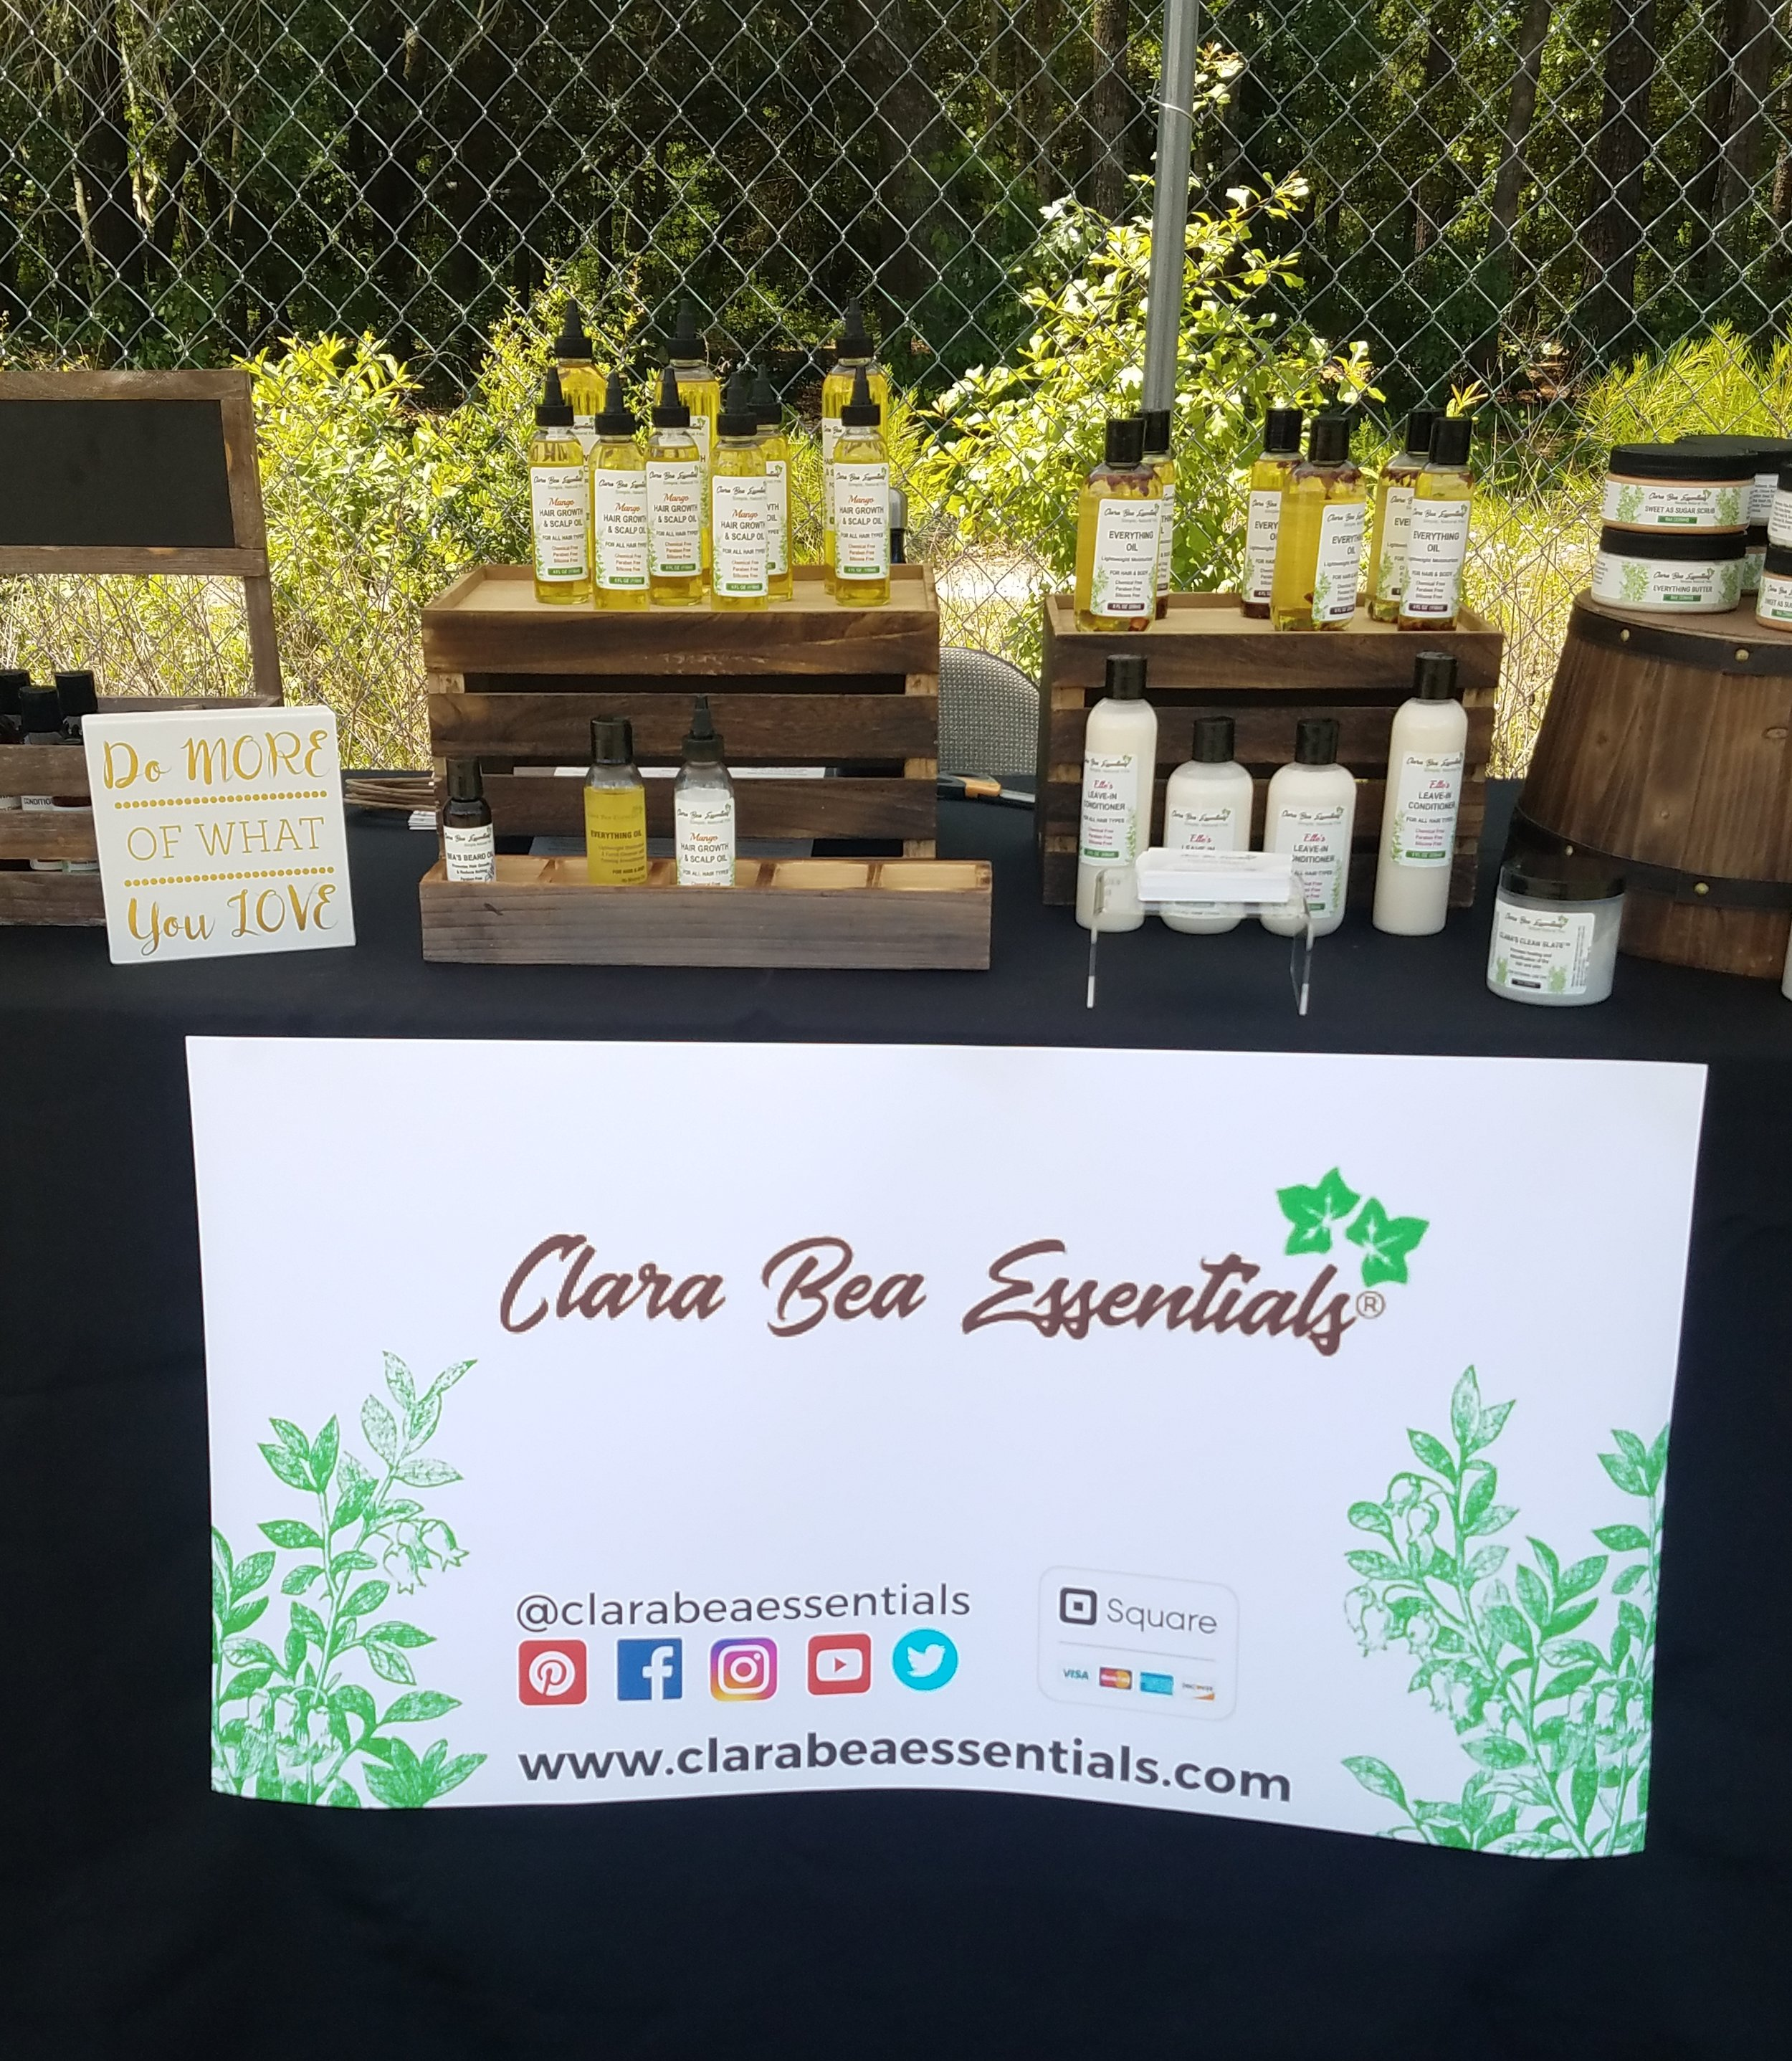 Clara Bea Essentials booth with health and beauty items for sale